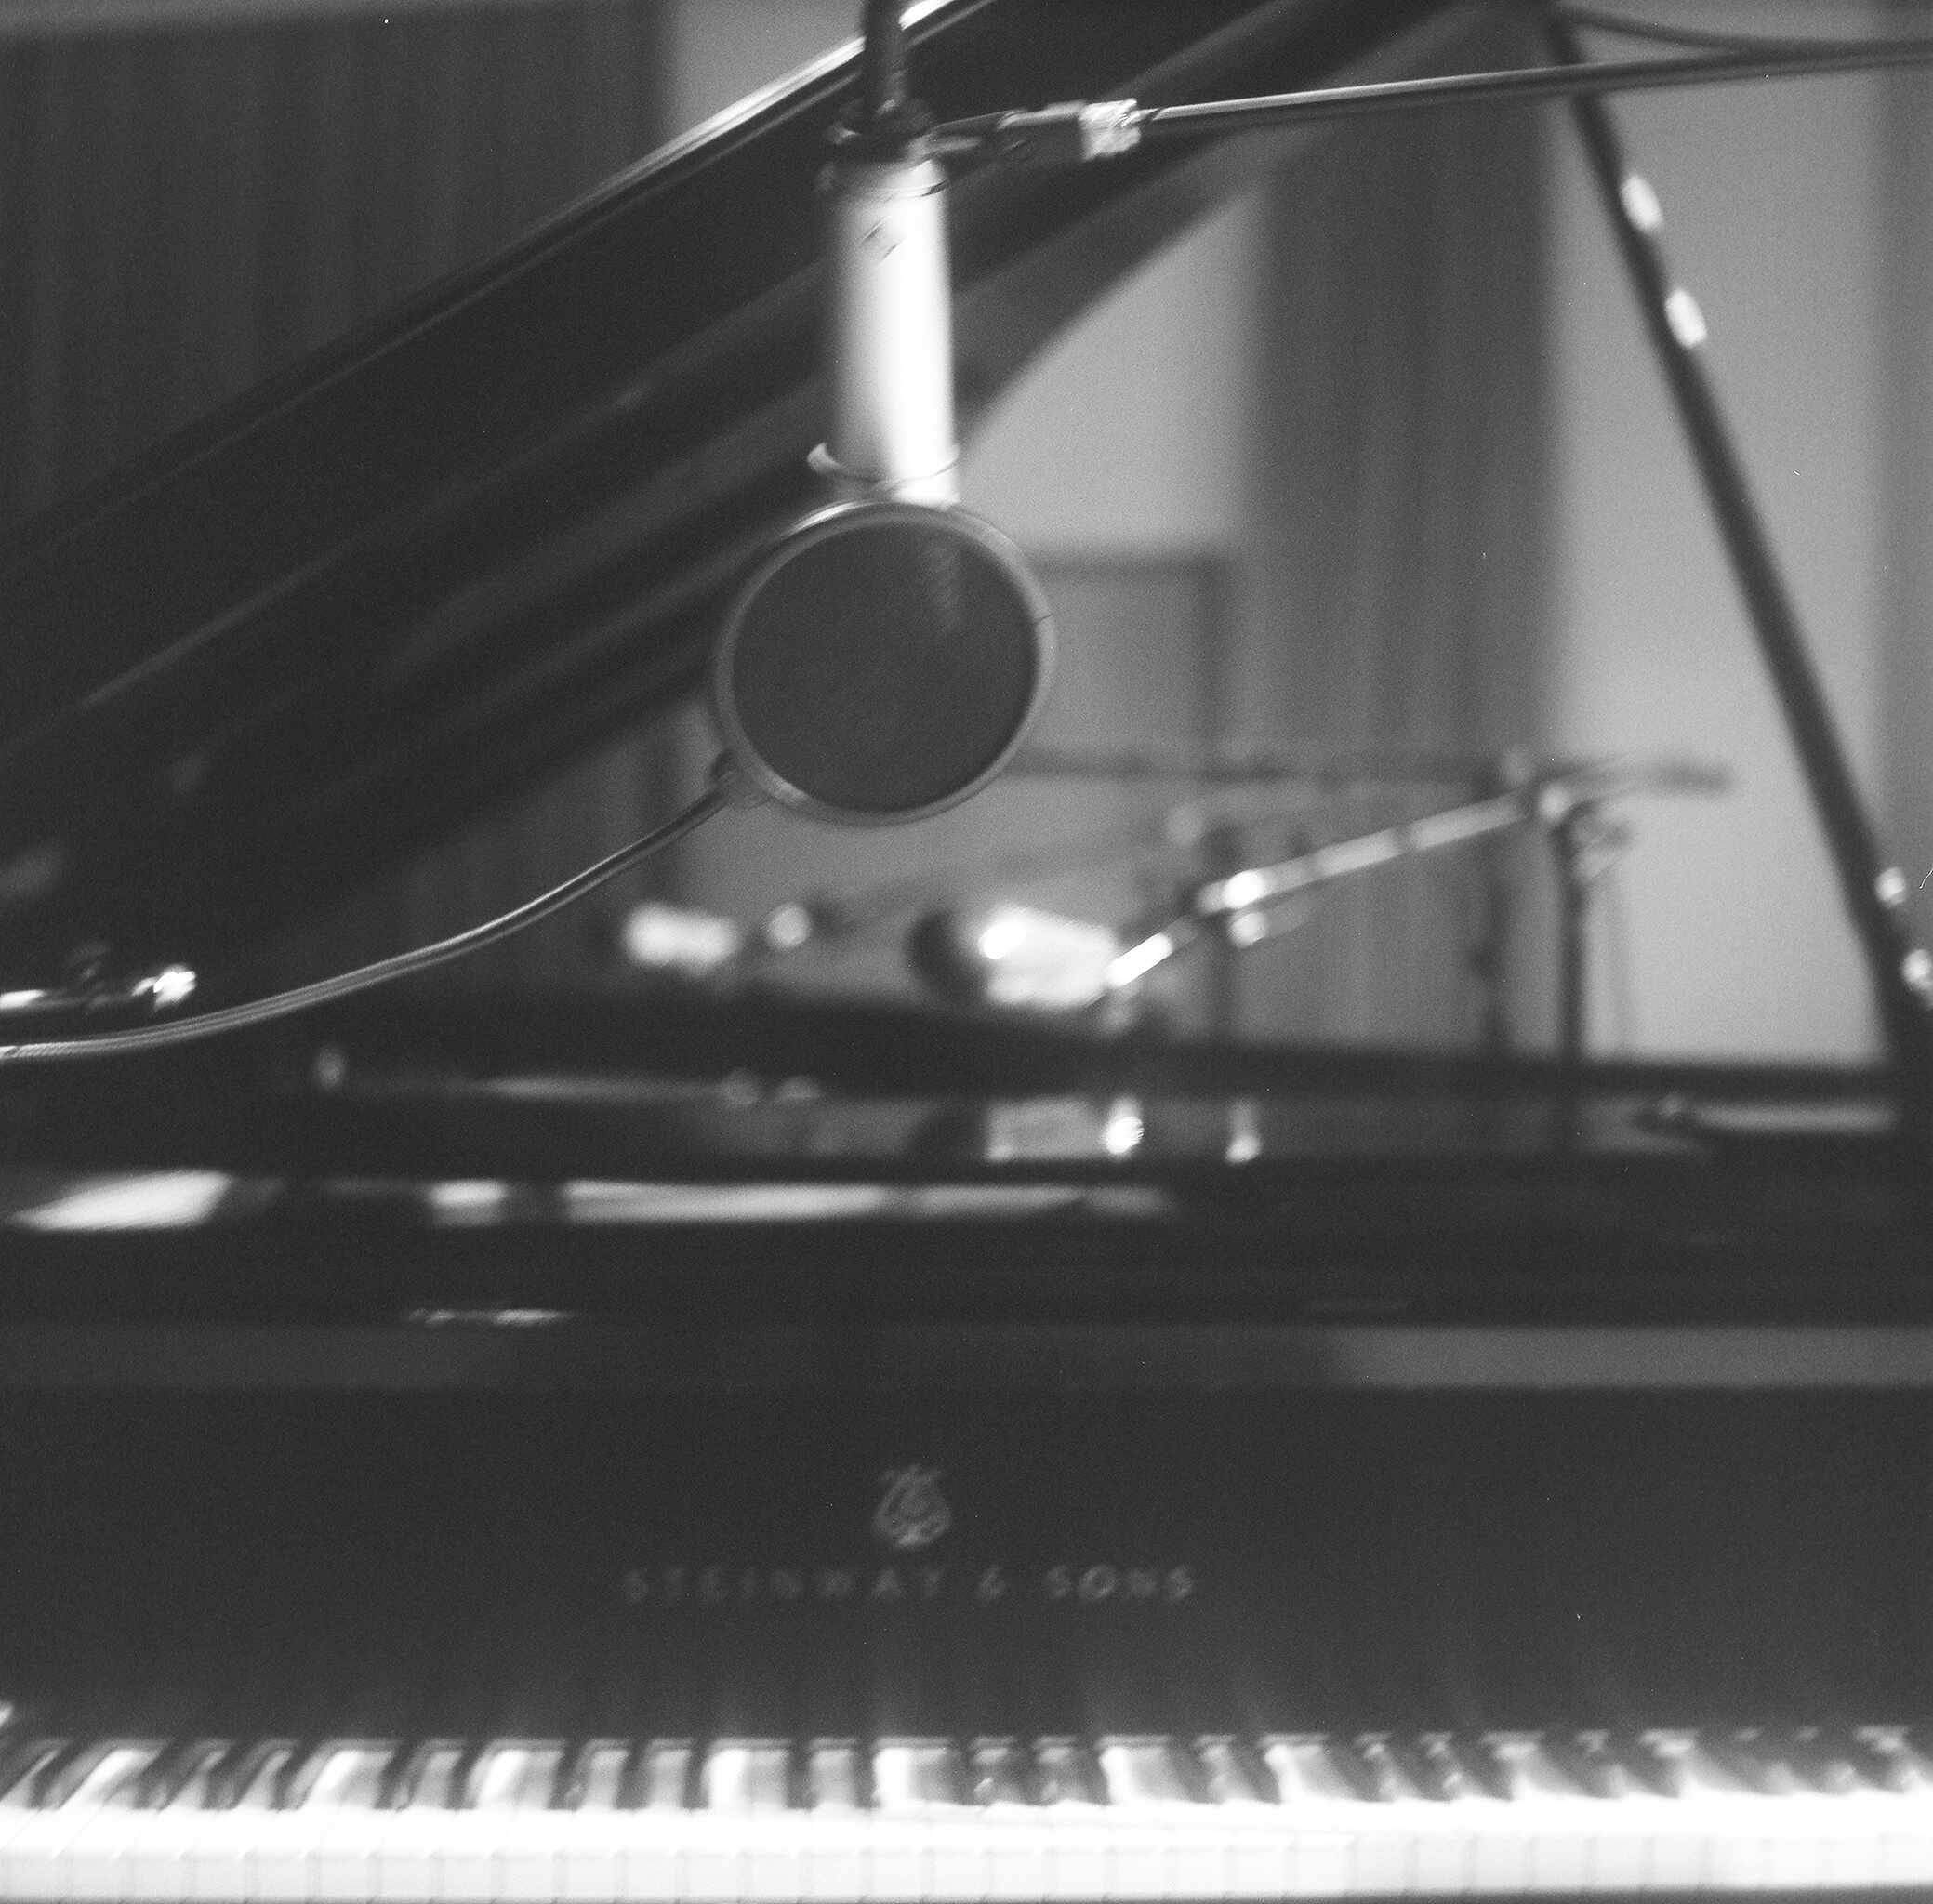 The gorgeous Steinway Grand I was honoured to play.